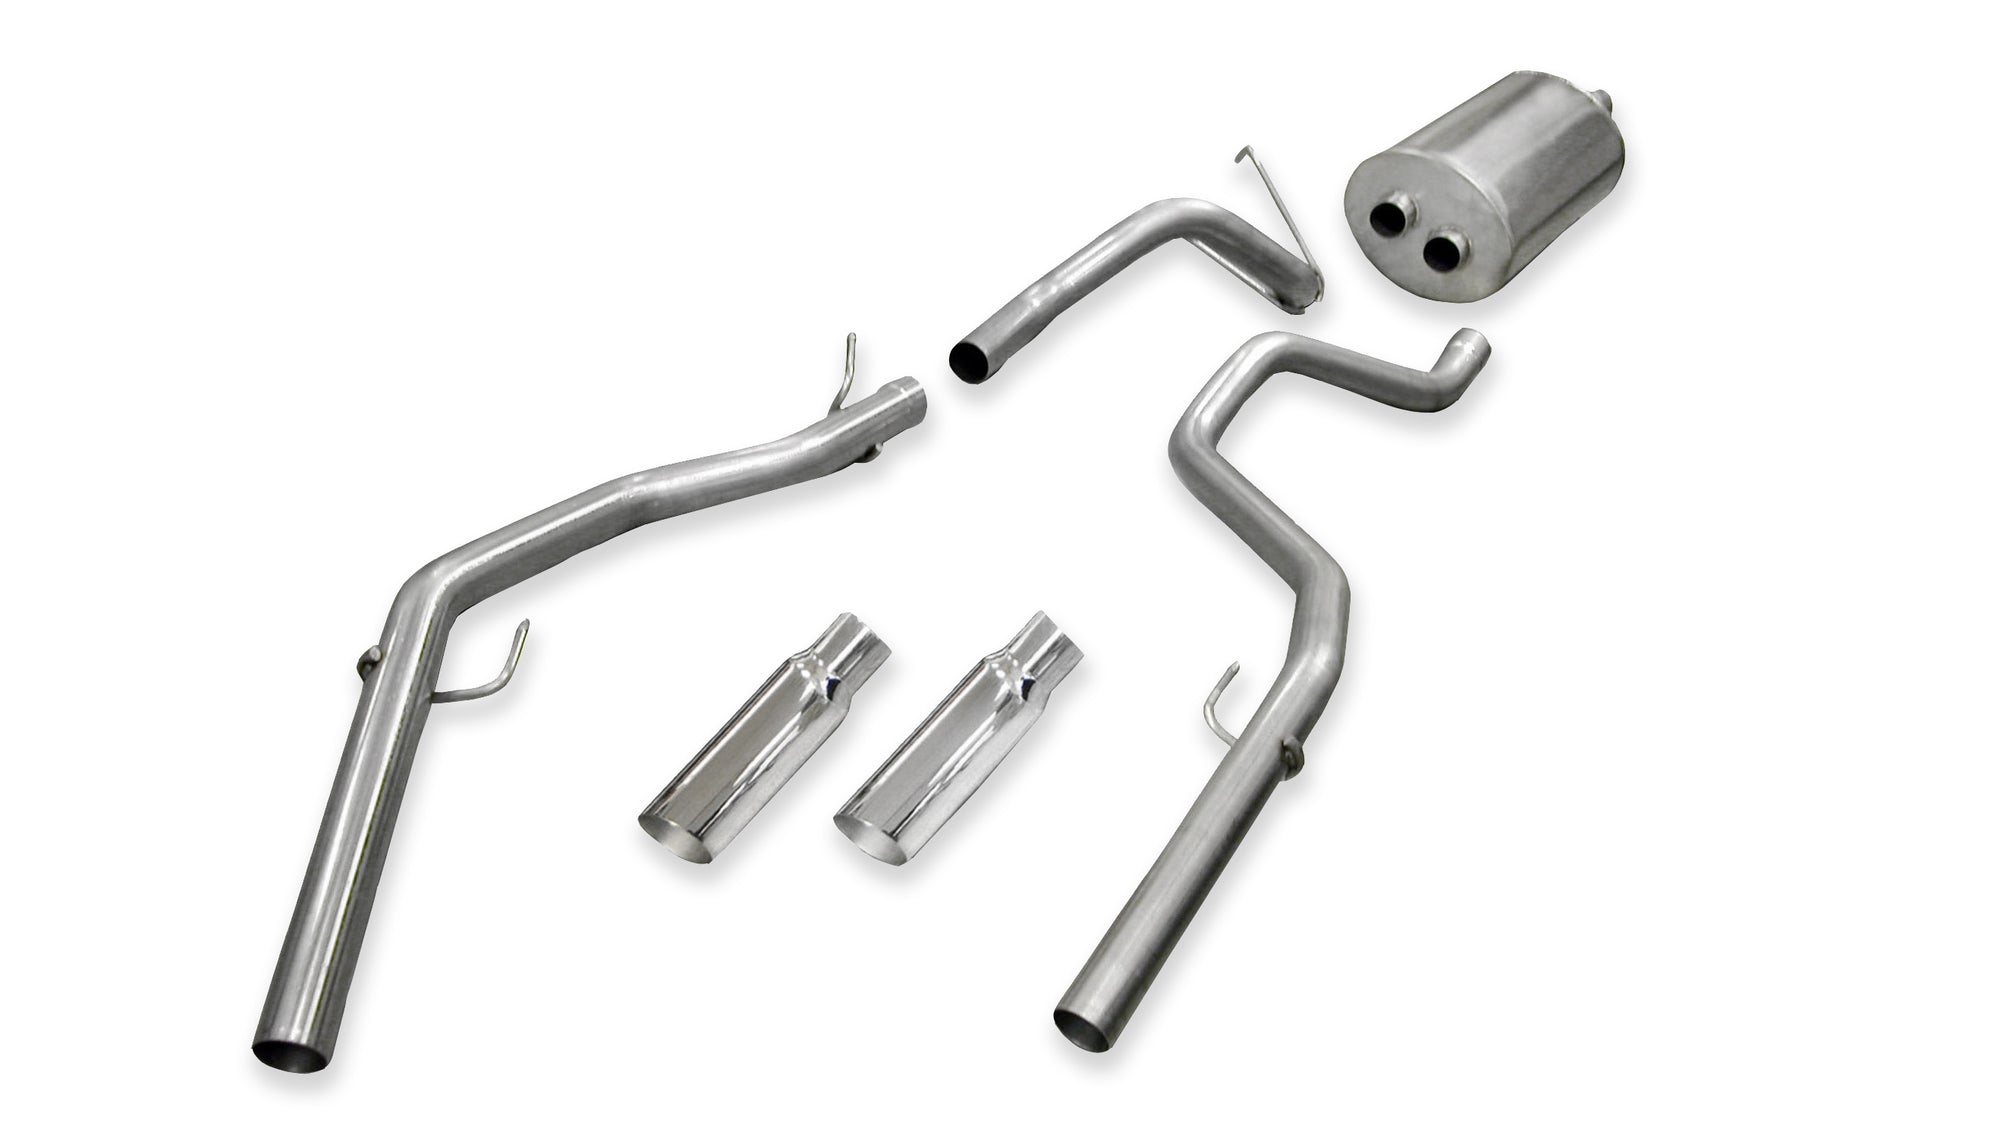 2009-2019 Dodge Ram (Classic Body Style) 1500 4.7 or 5.7L V8 Cat-Back Exhaust